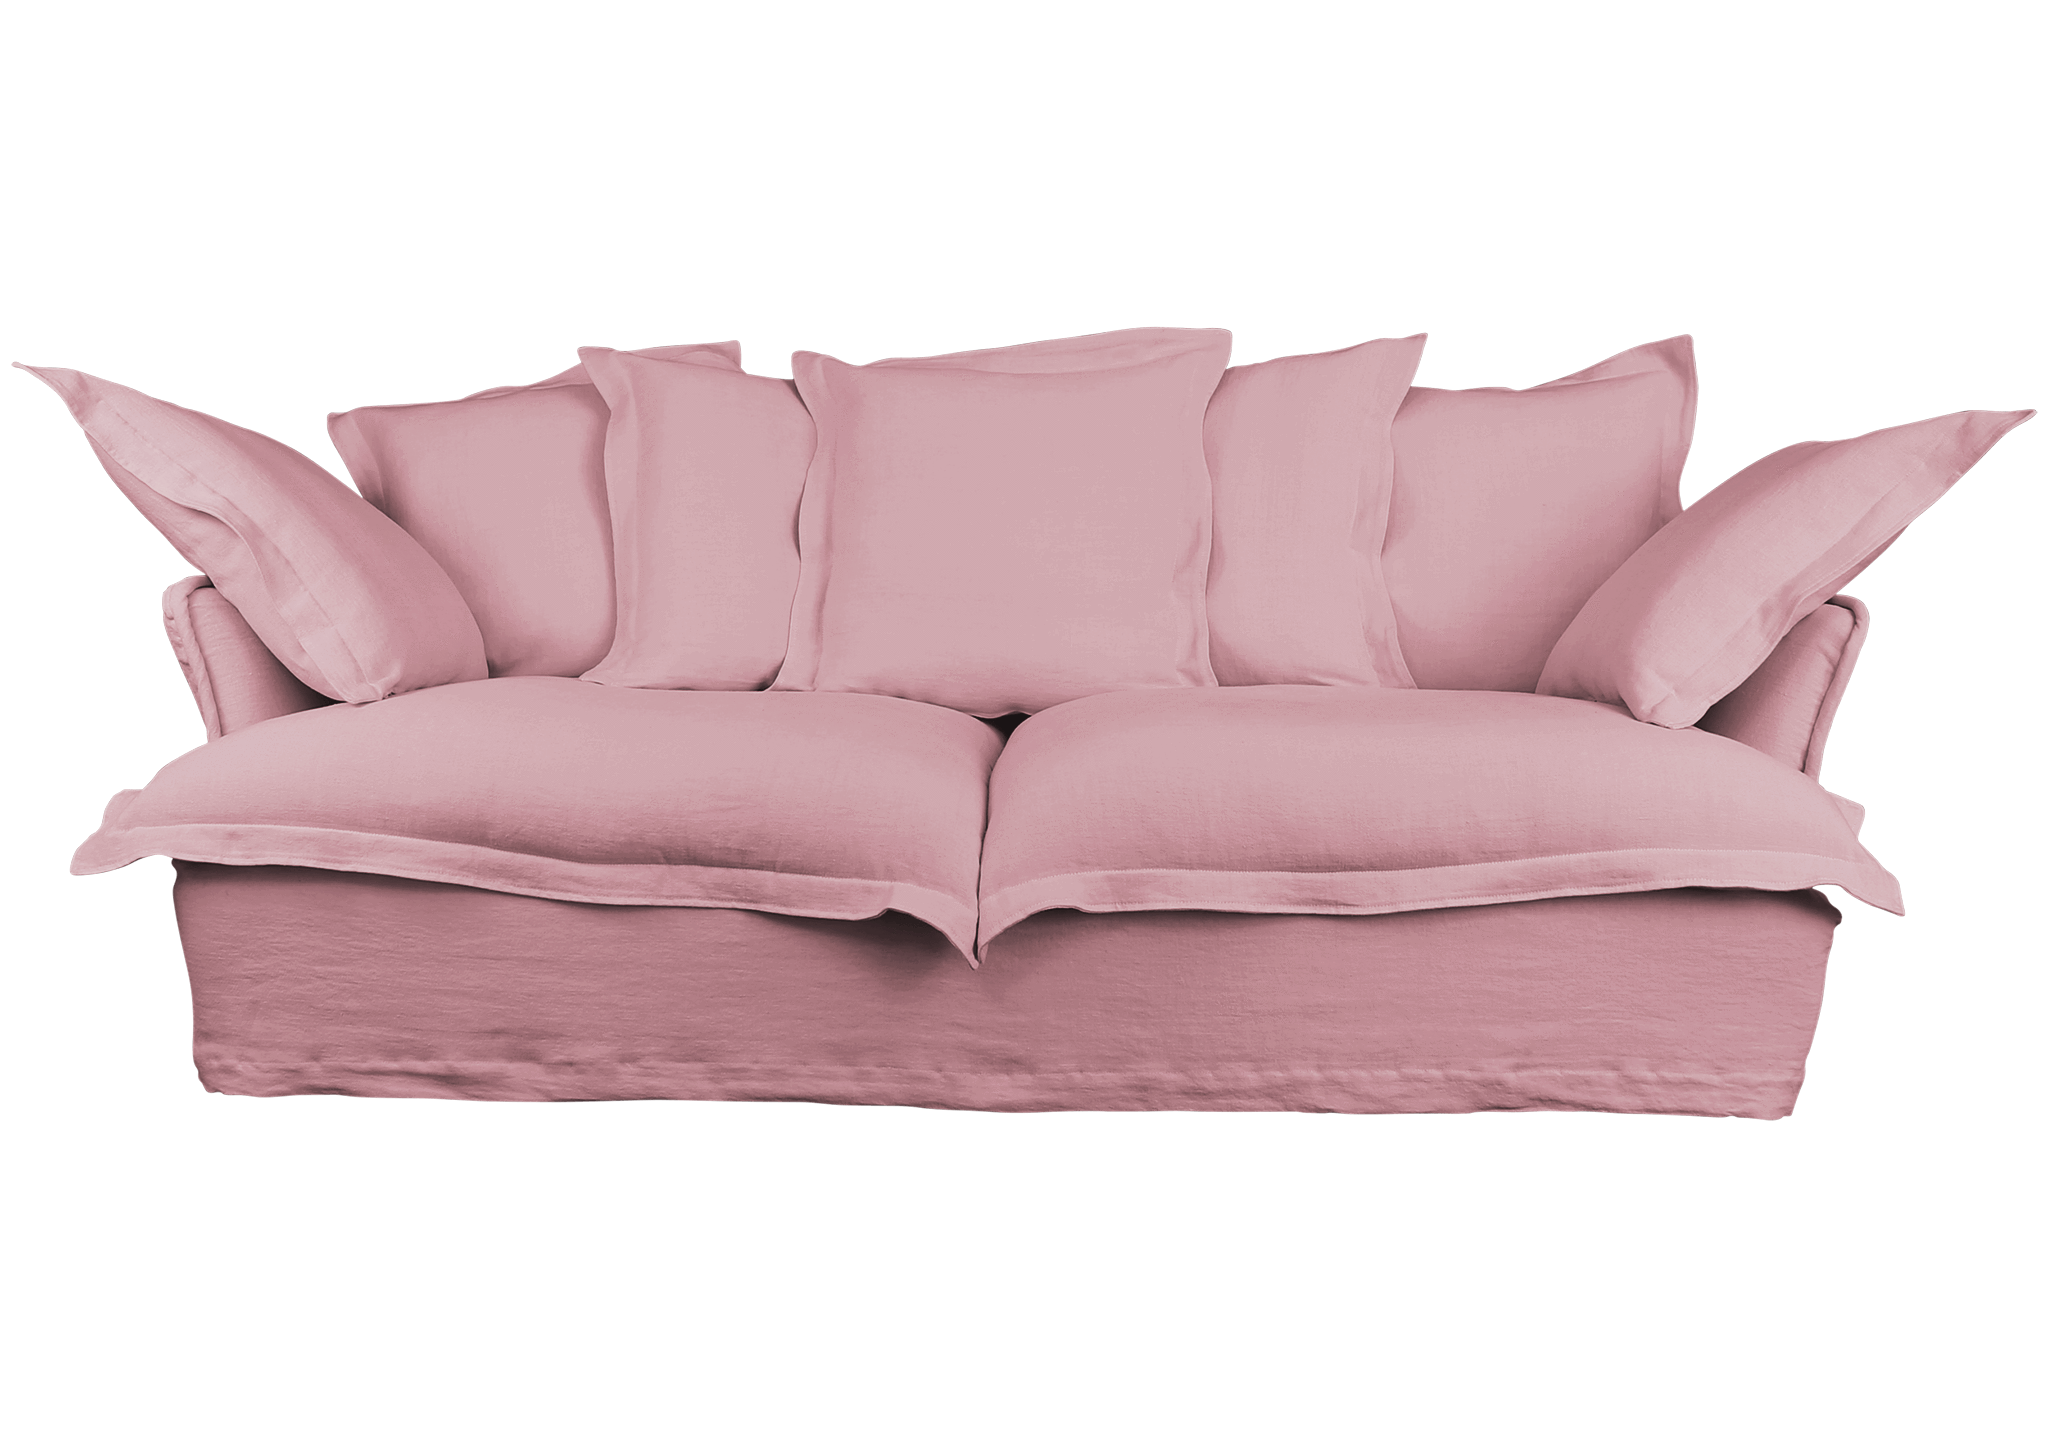 Pink couch png. Comfortable sofas linen cotton